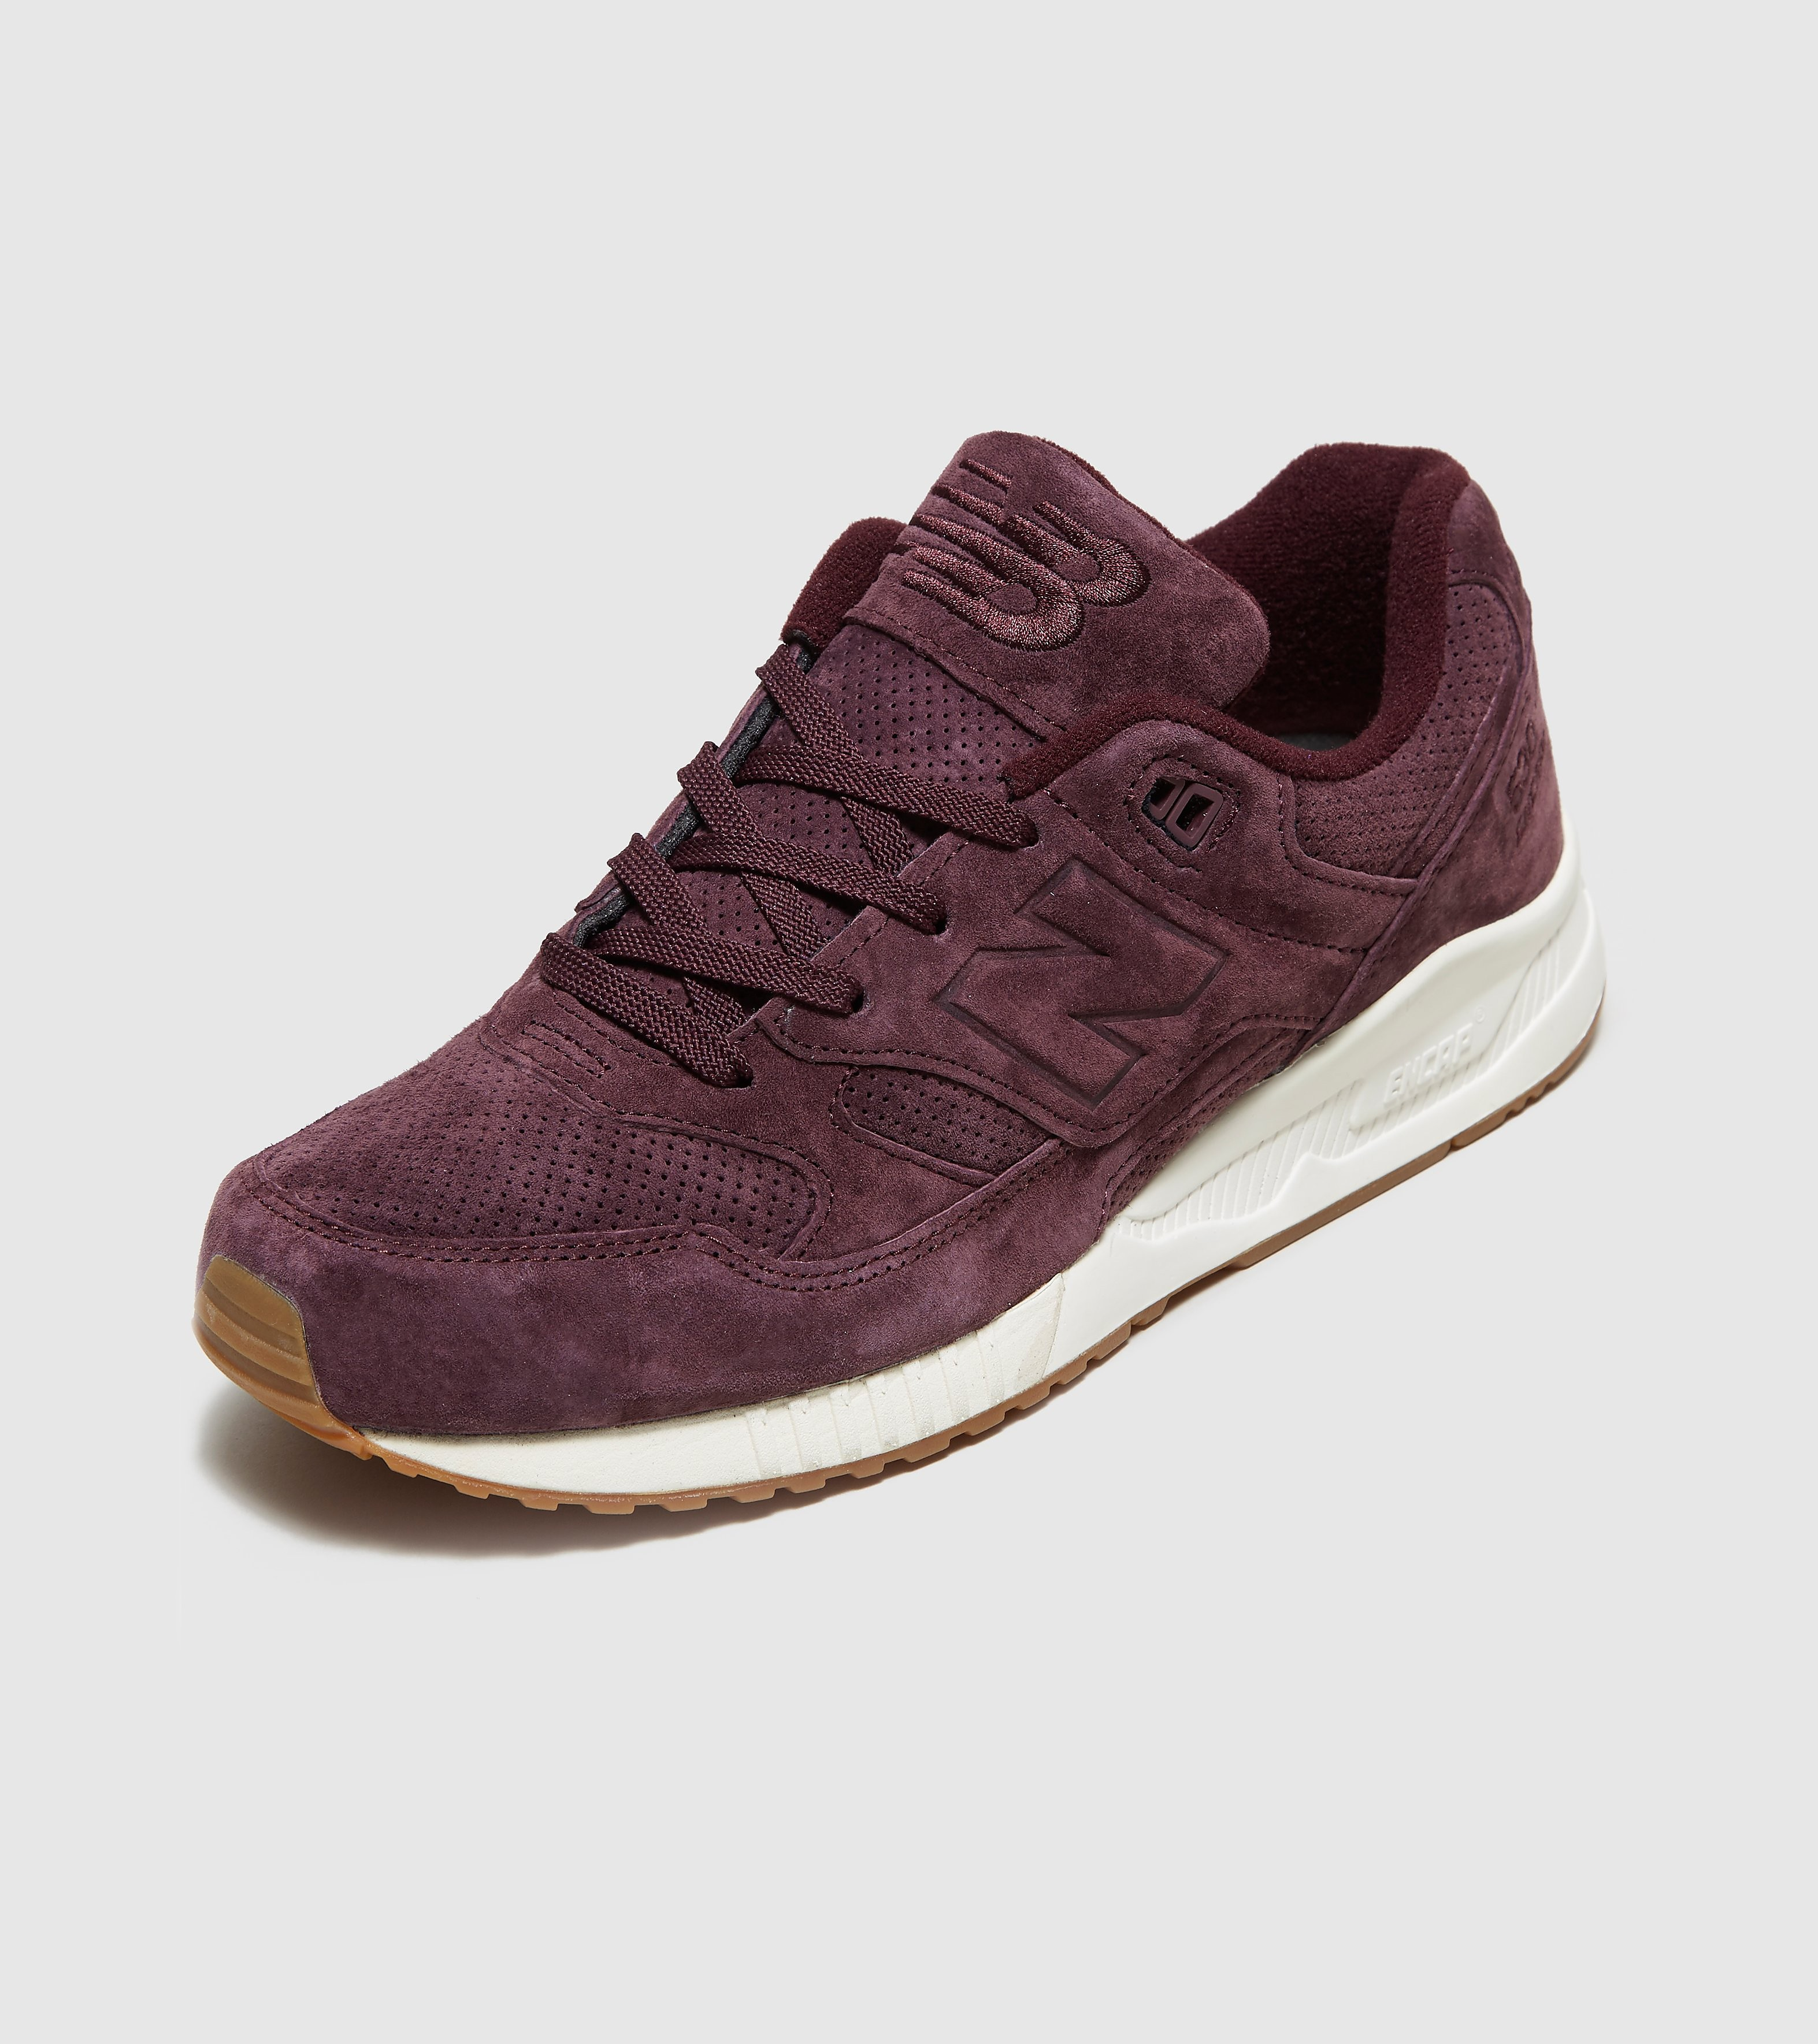 New Balance 530 Suede